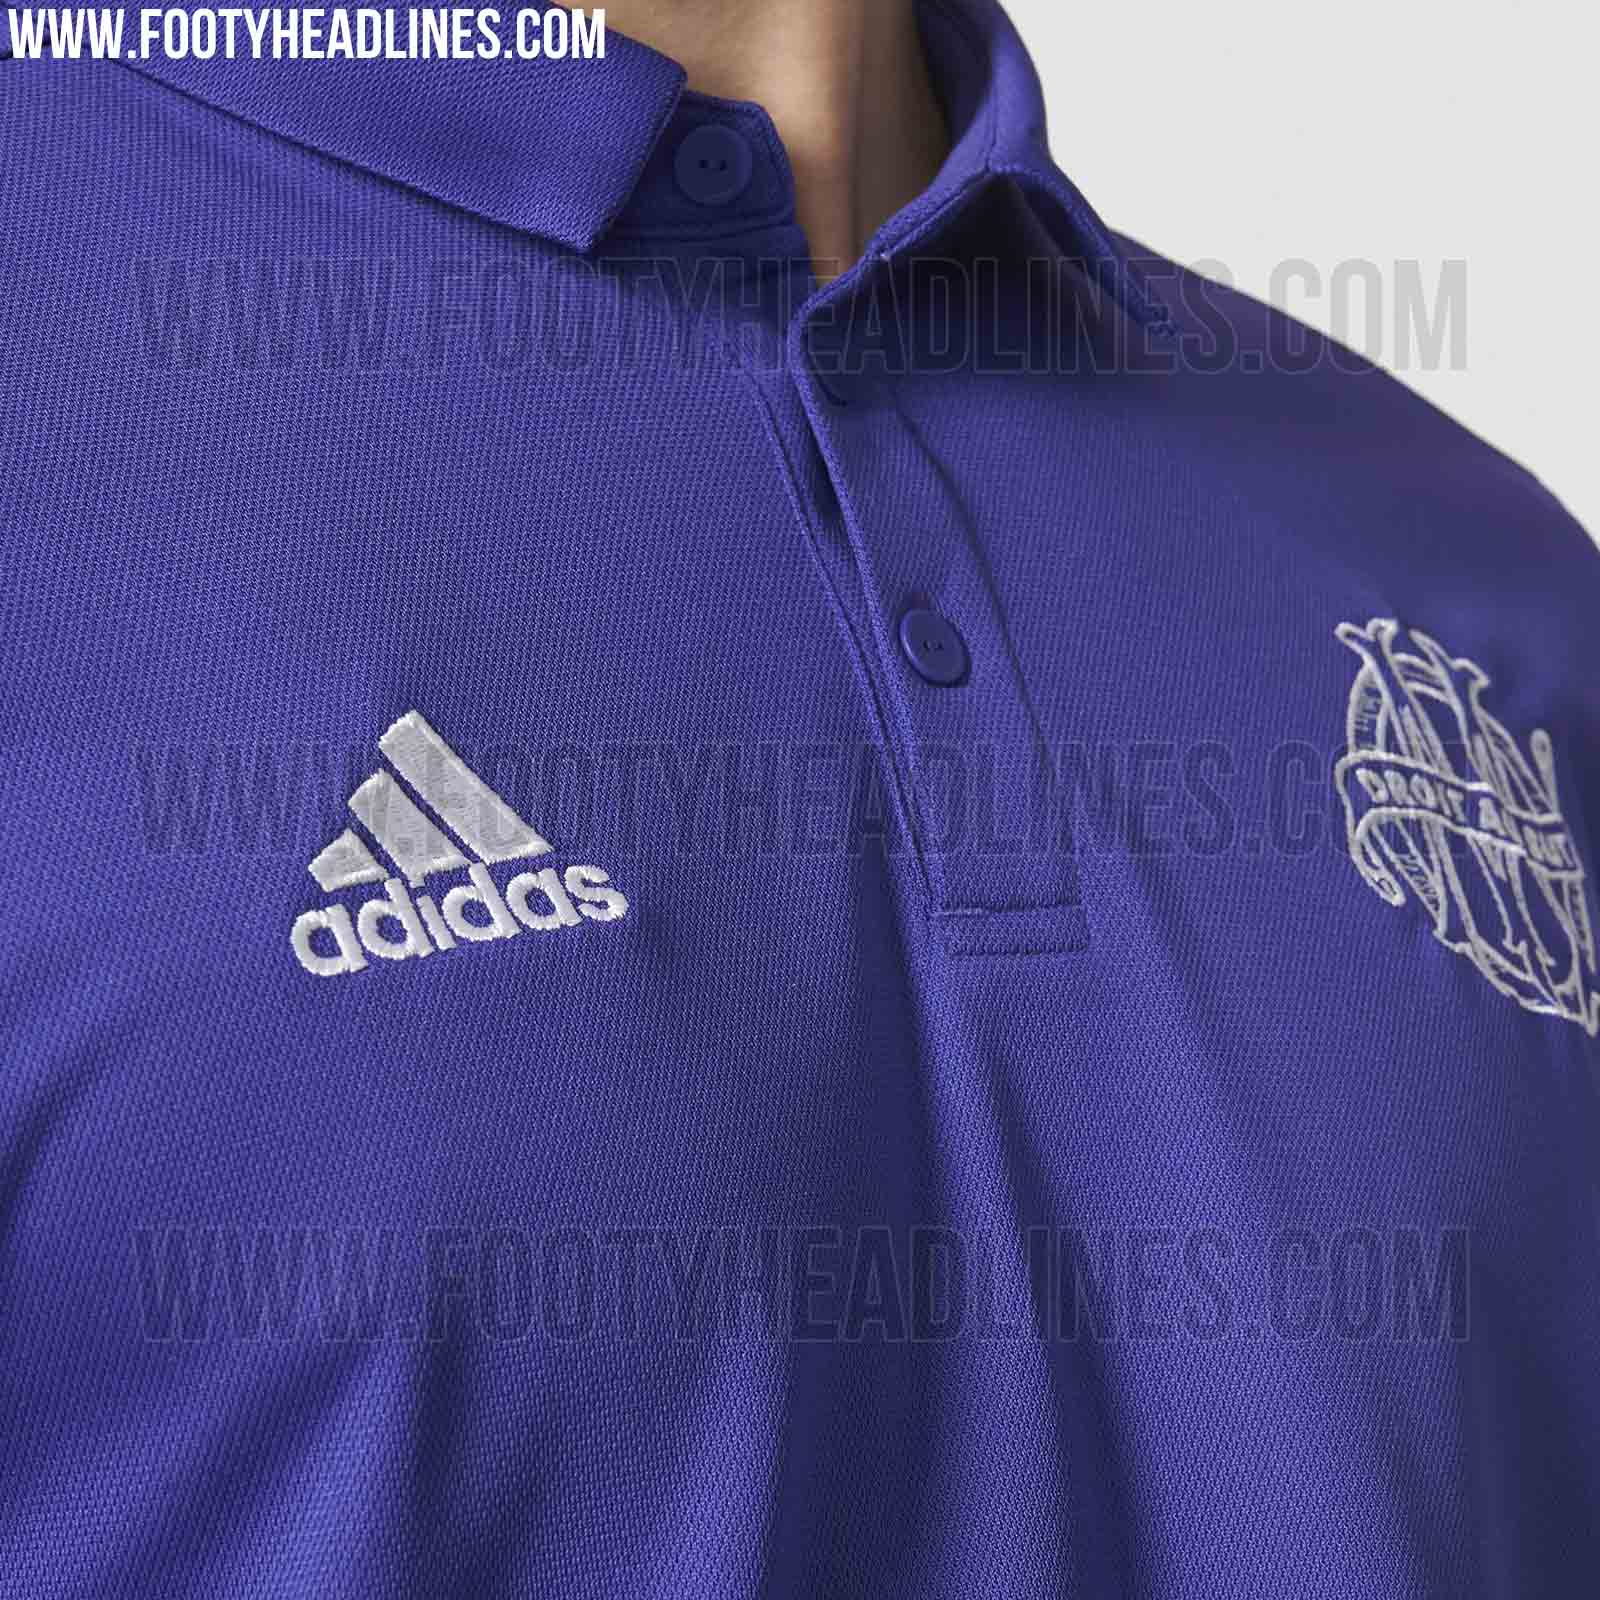 https://image.ibb.co/eGmvWv/Olympique_Marseille_third_kit_5.jpg